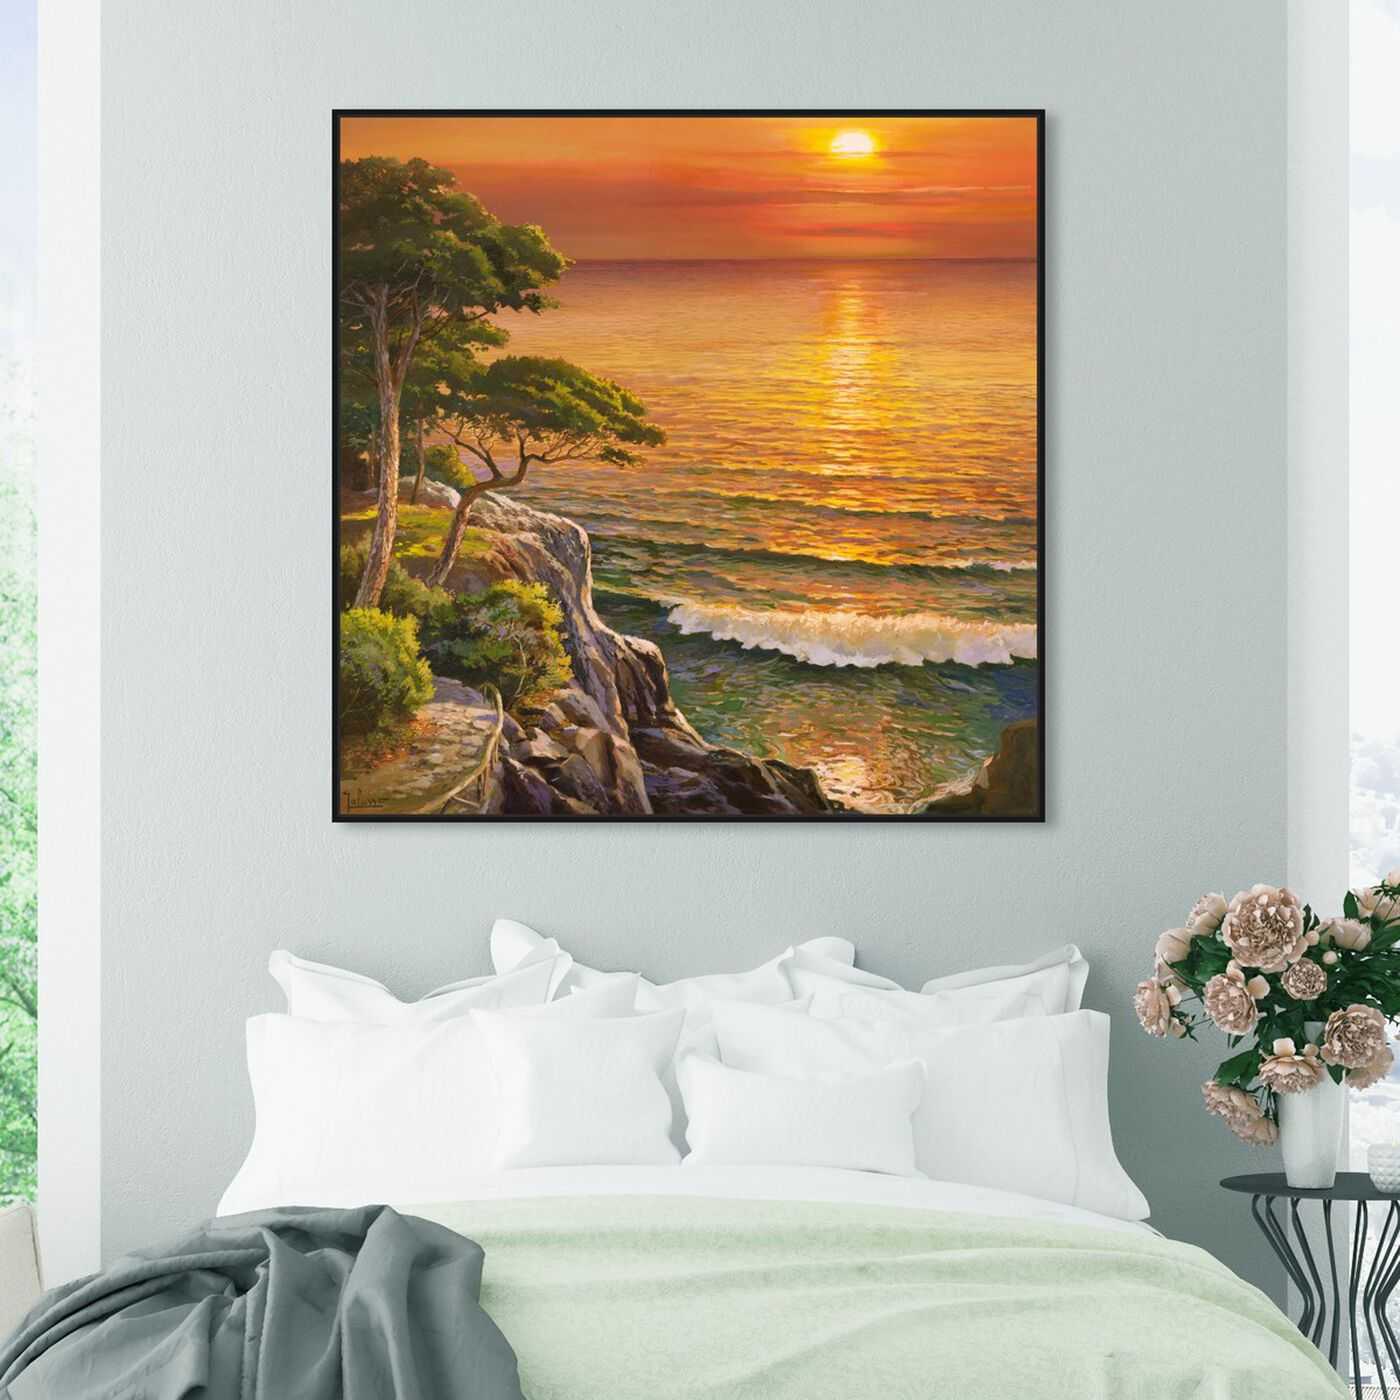 Hanging view of Sai - Sunset Visage 1AD2552 featuring nature and landscape and sunrise and sunsets art.